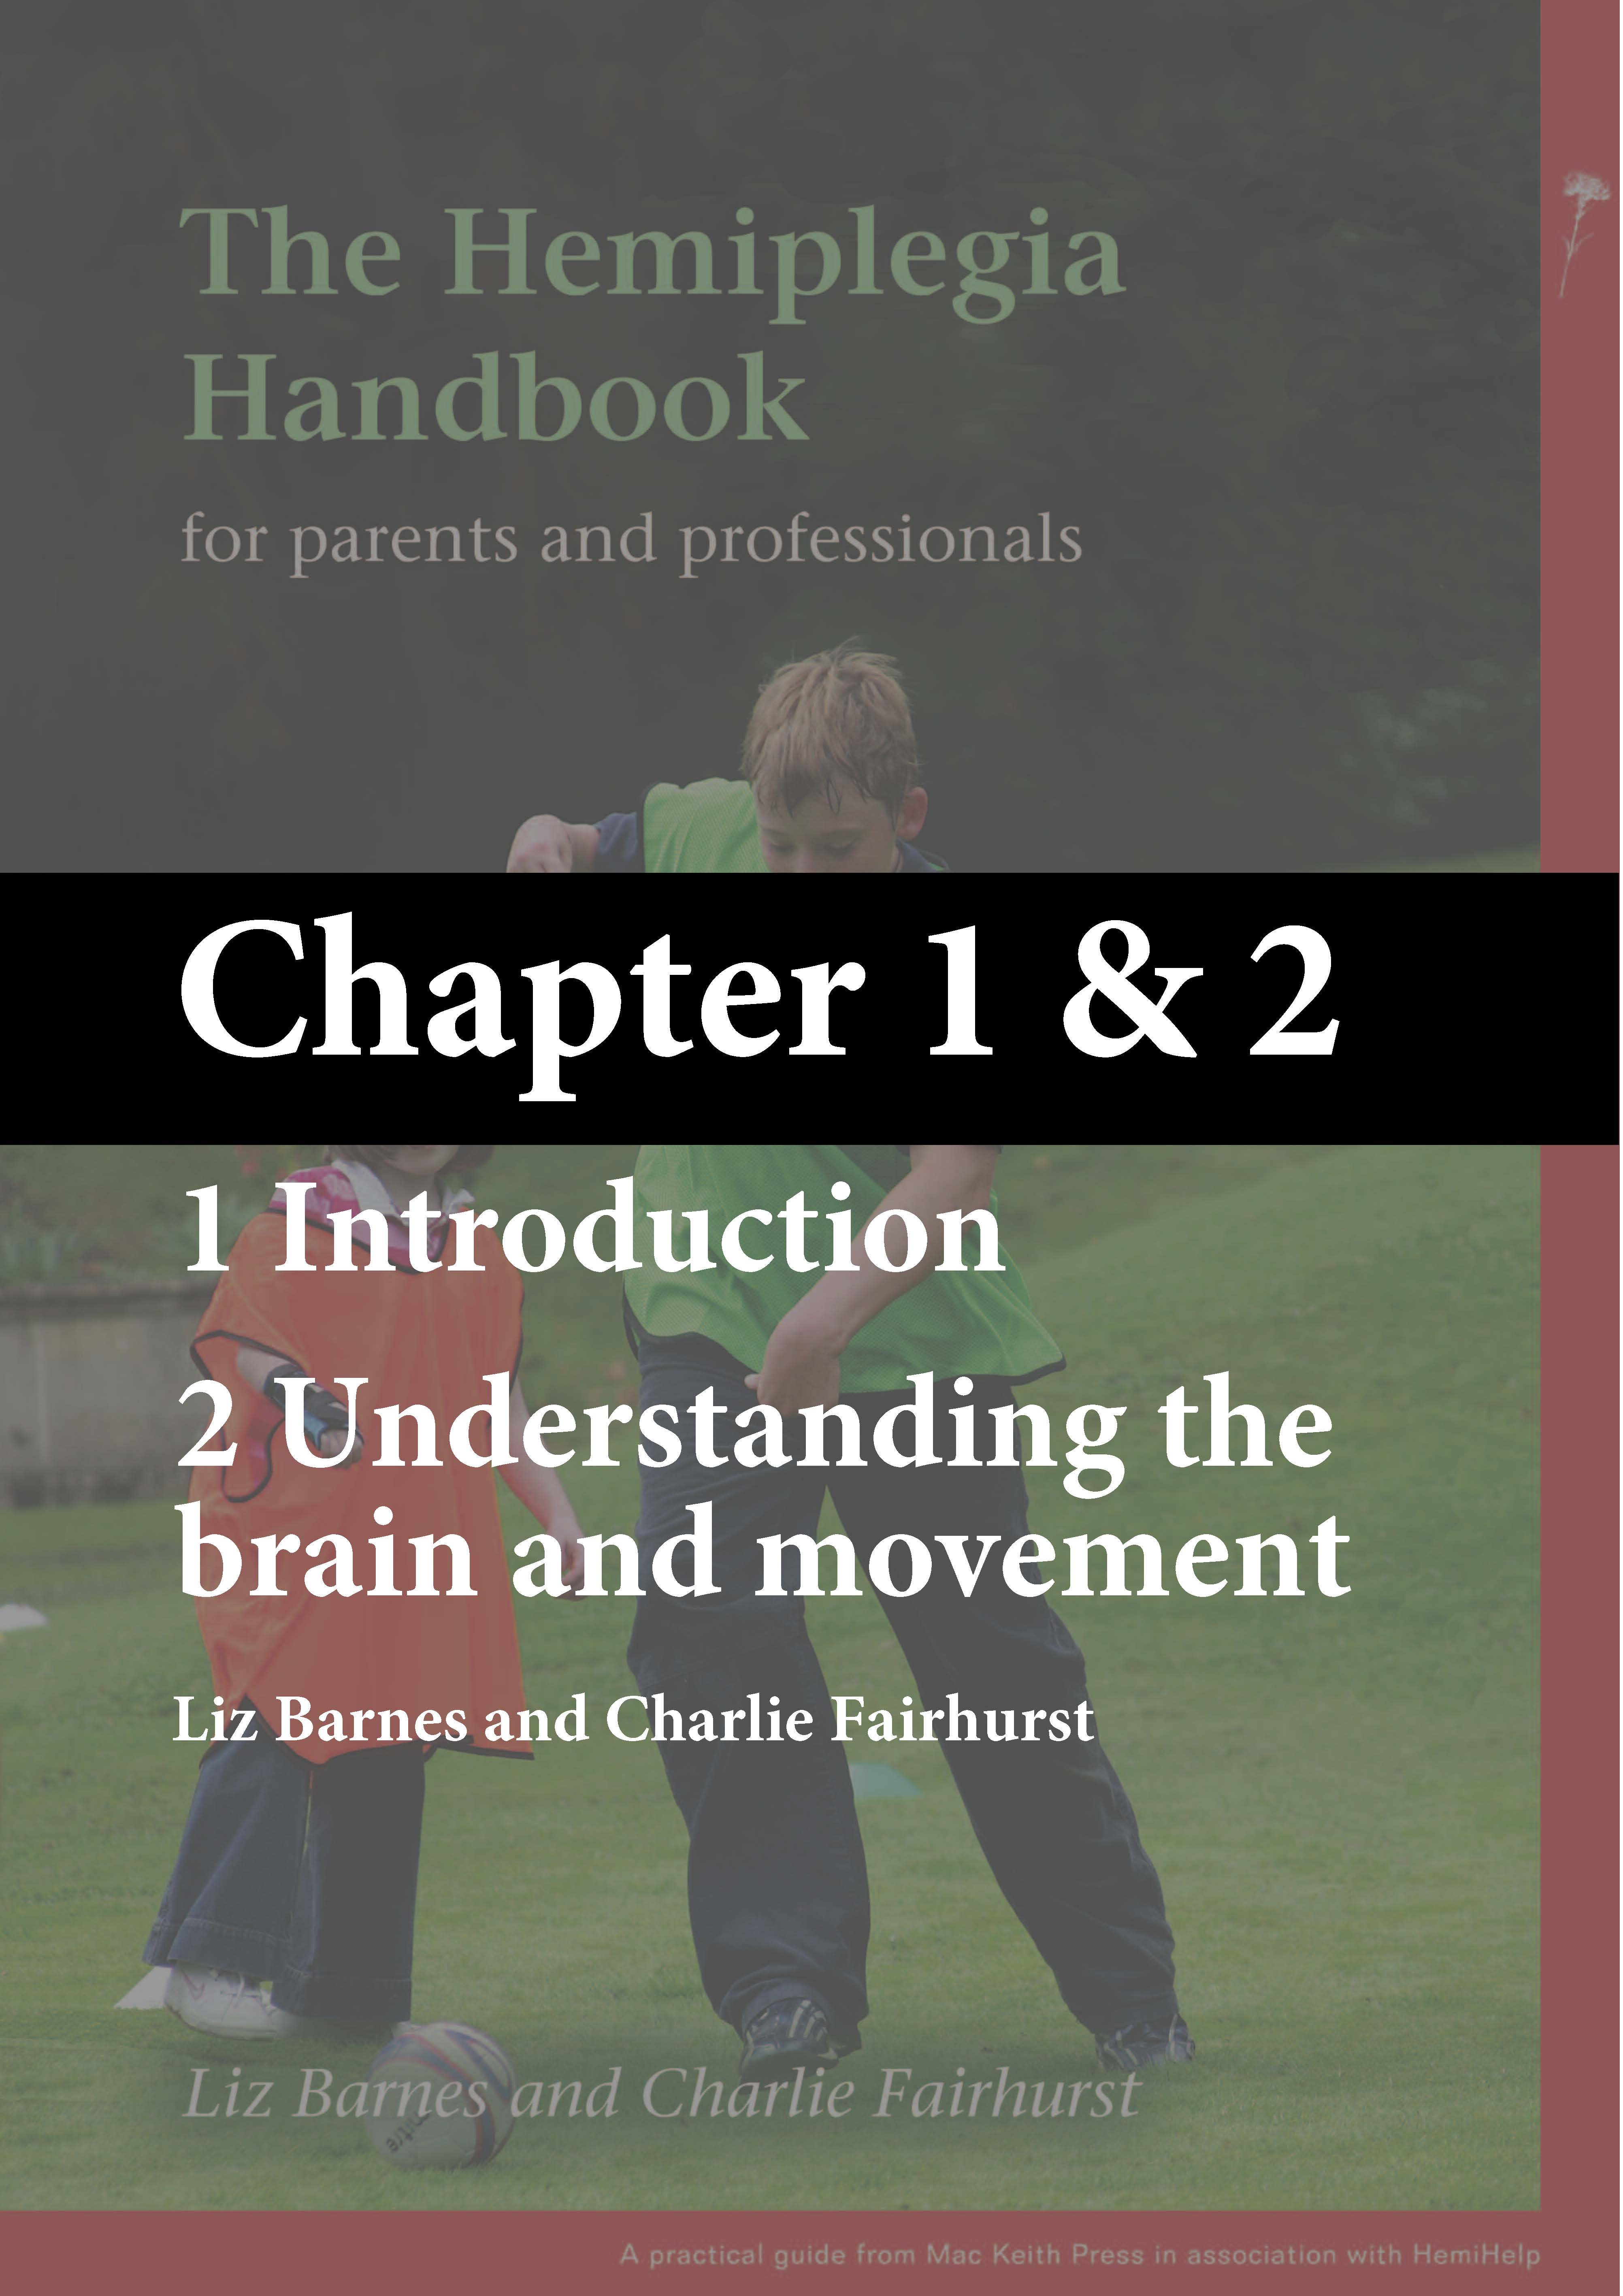 The Hemiplegia Handbook - Chapter 1: Introduction & Chapter 2: Understanding the Brain and Movement